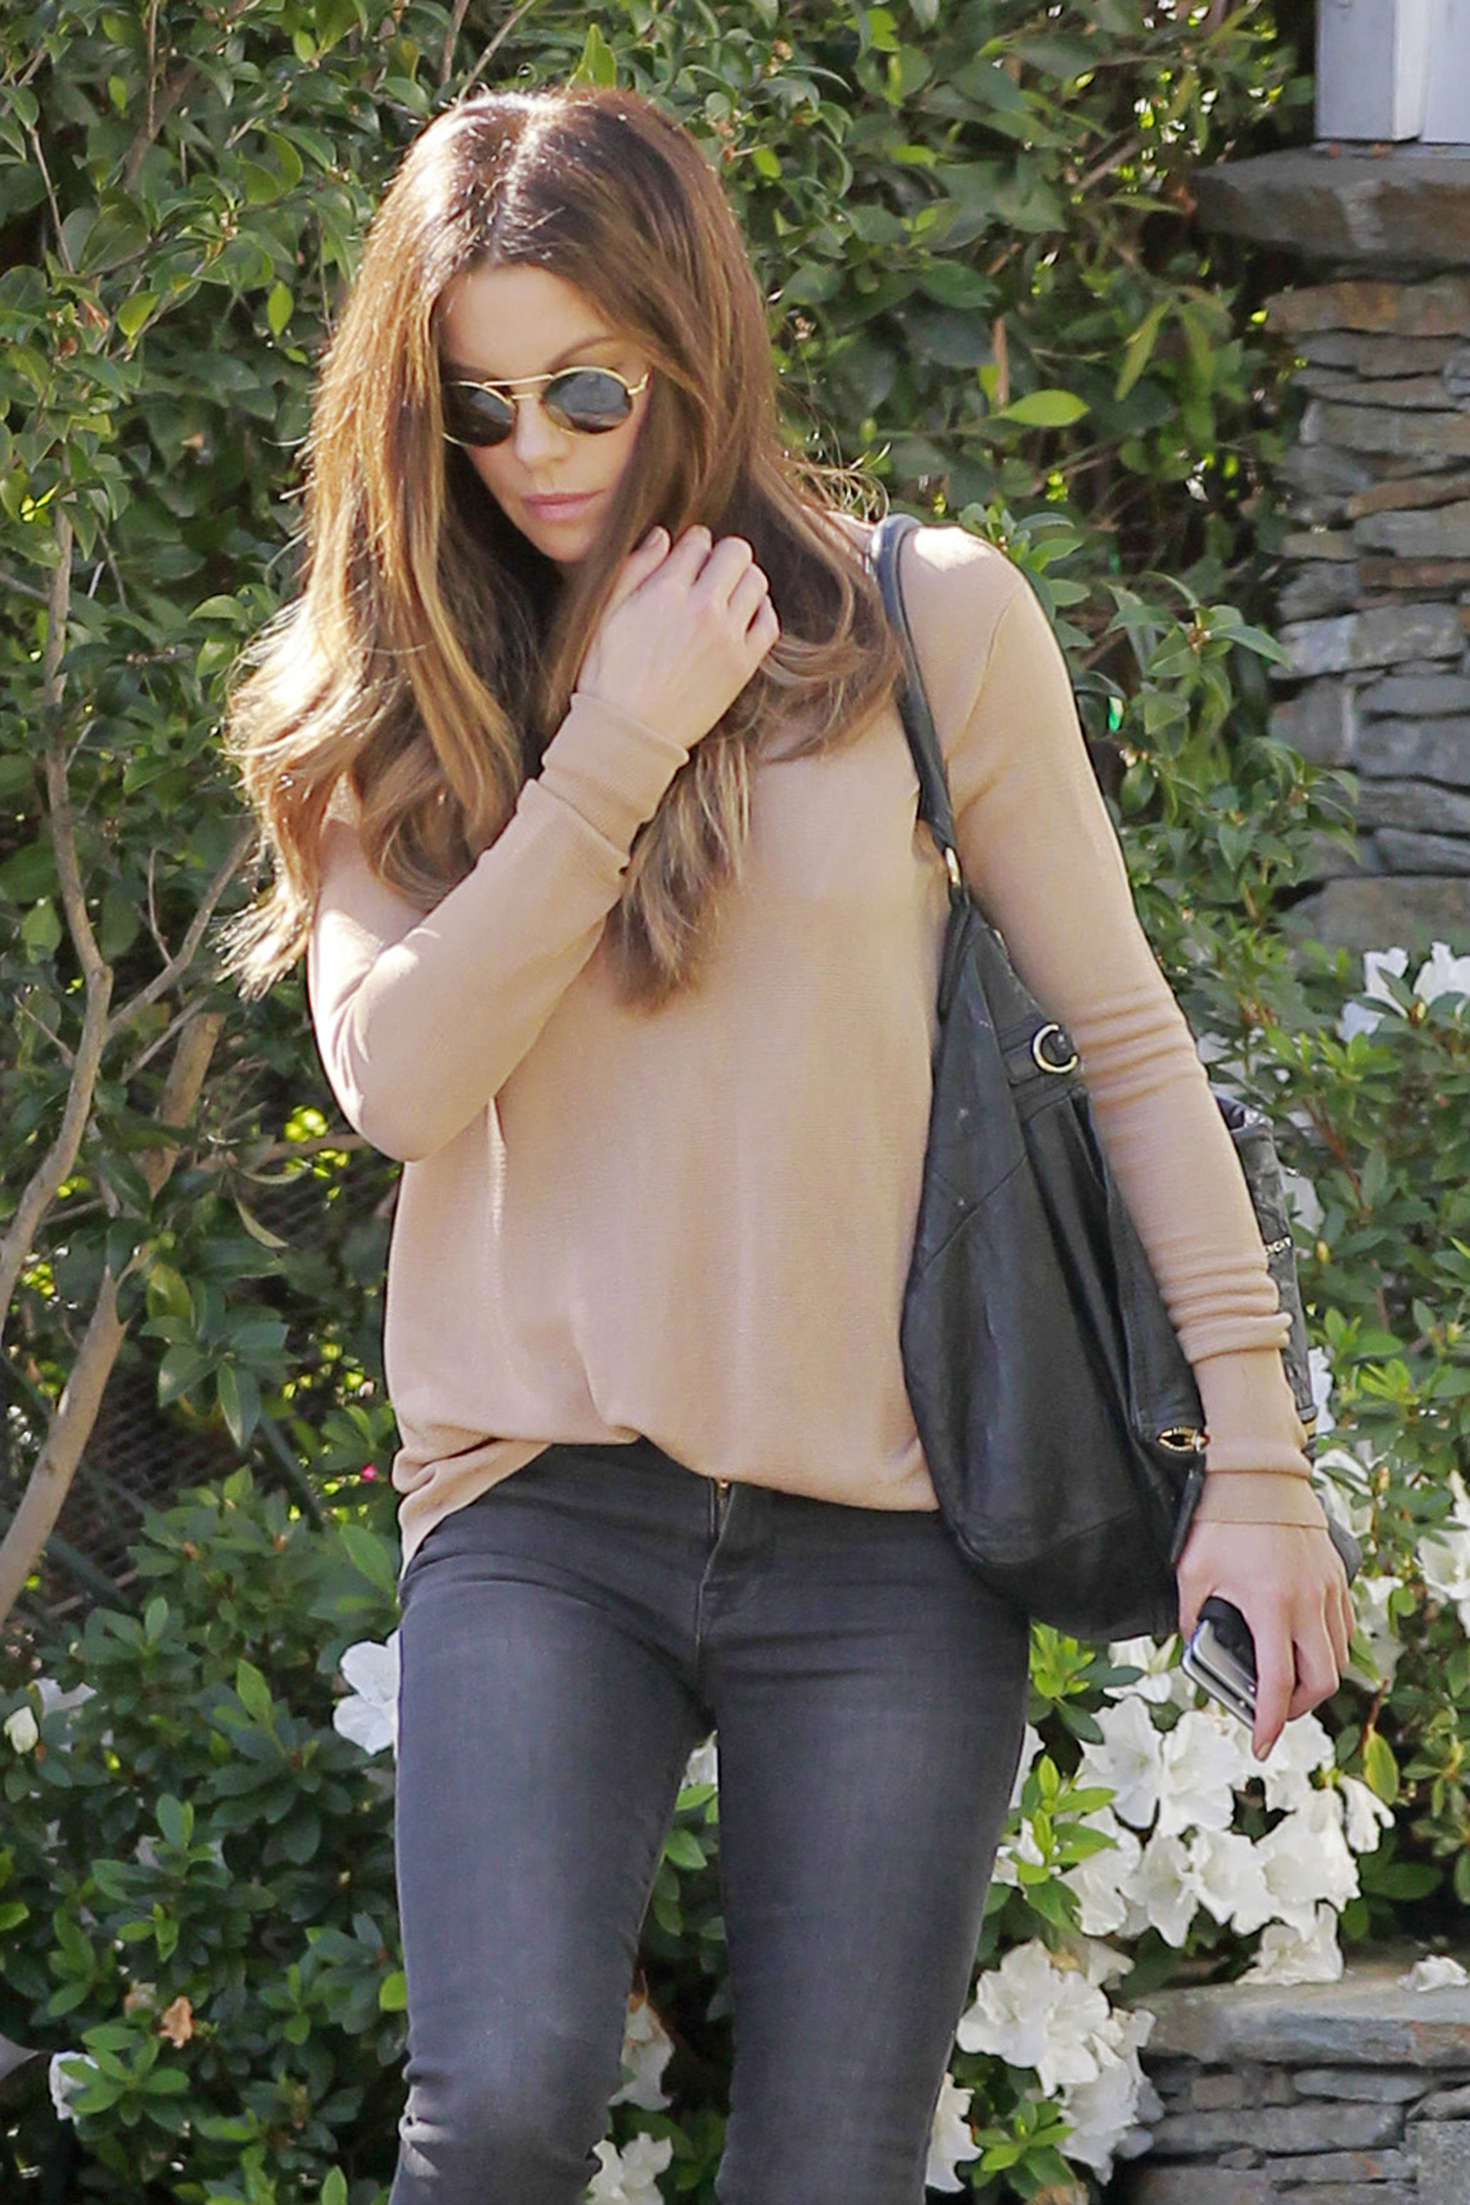 Kate Beckinsale 2016 : Kate Beckinsale in Tight Jeans -11